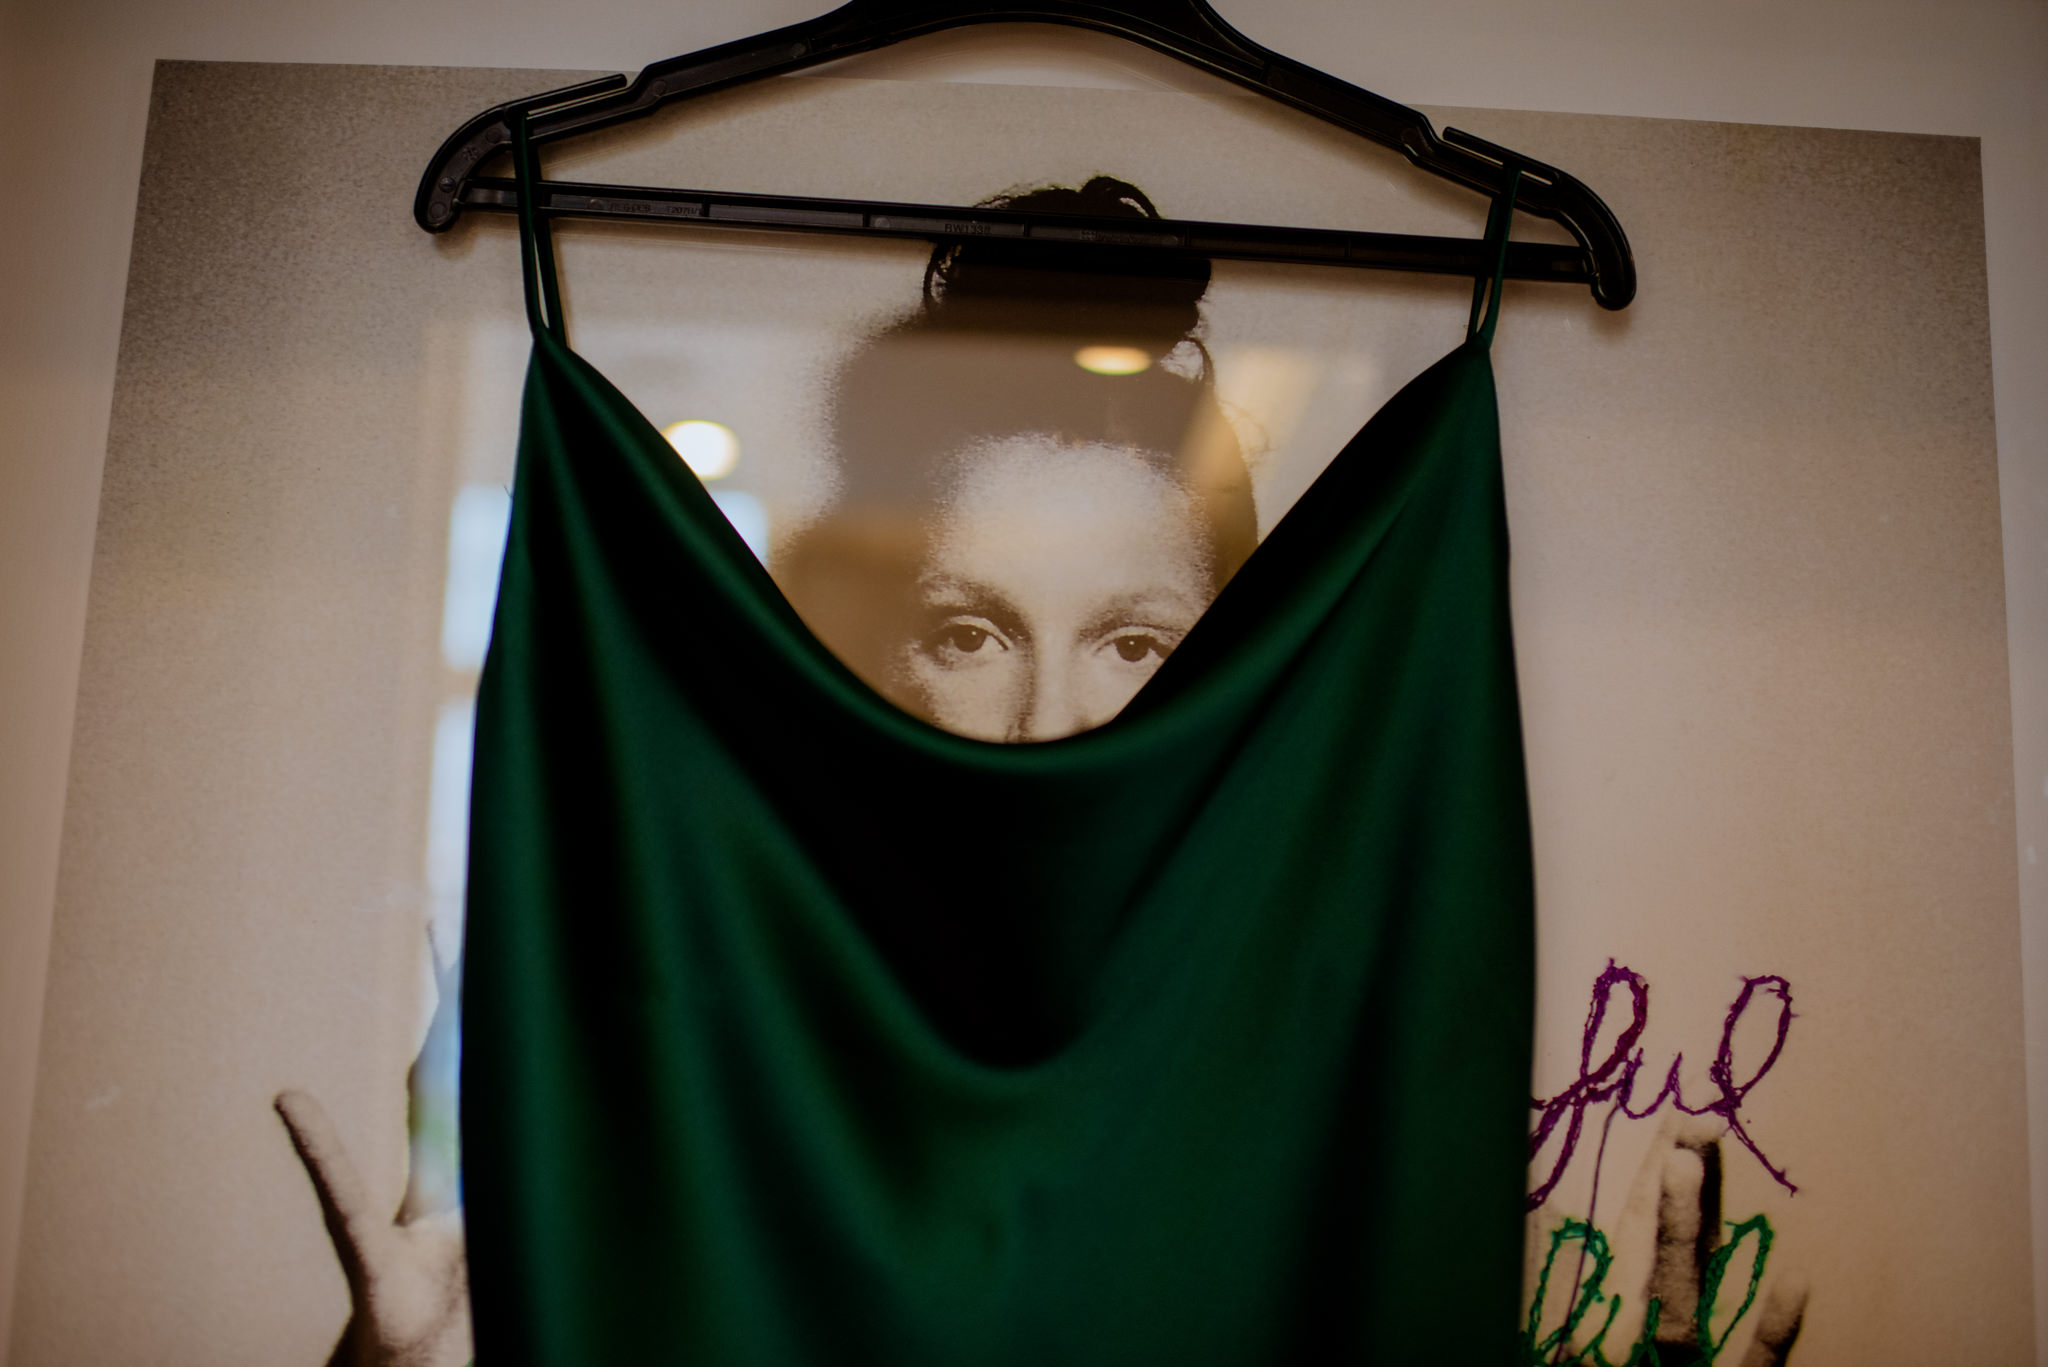 Green dress hanging in front of portrait of lady